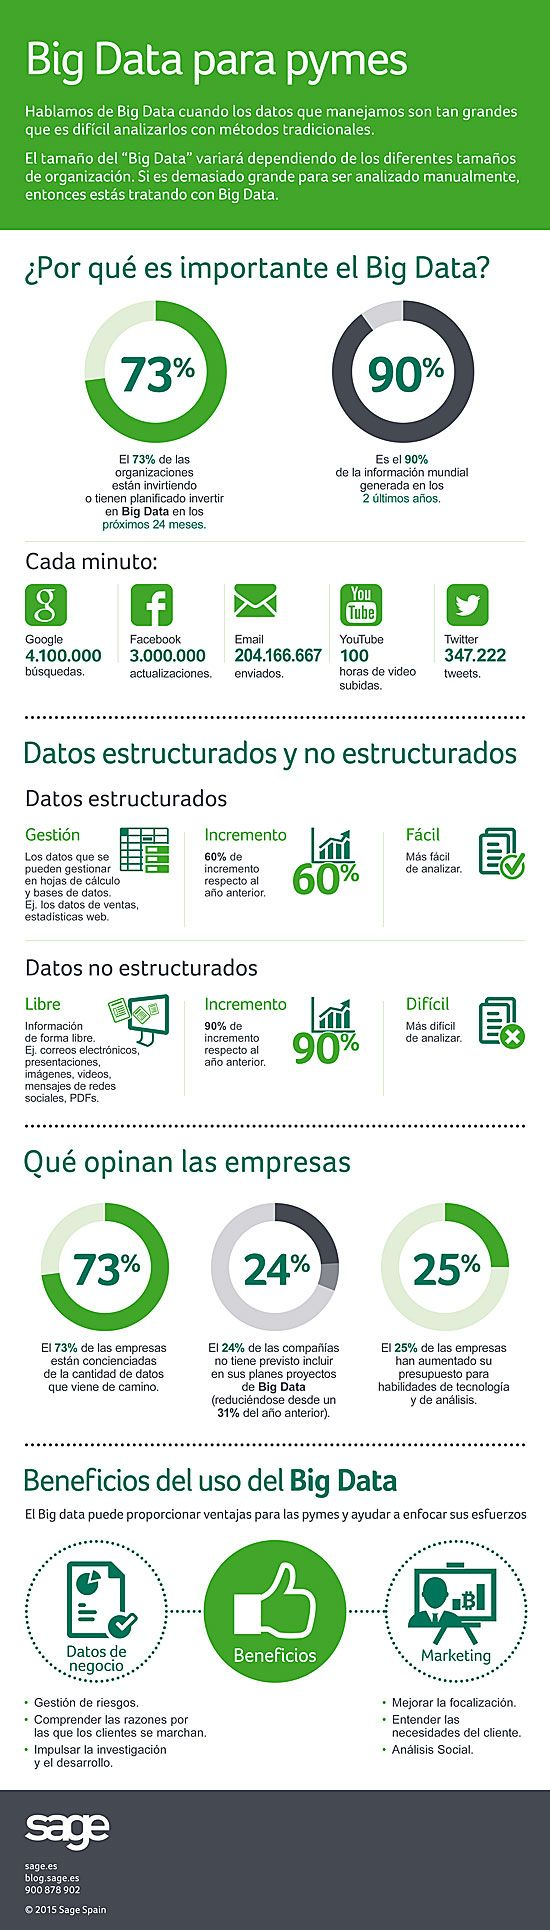 Big Data para pymes #infografia